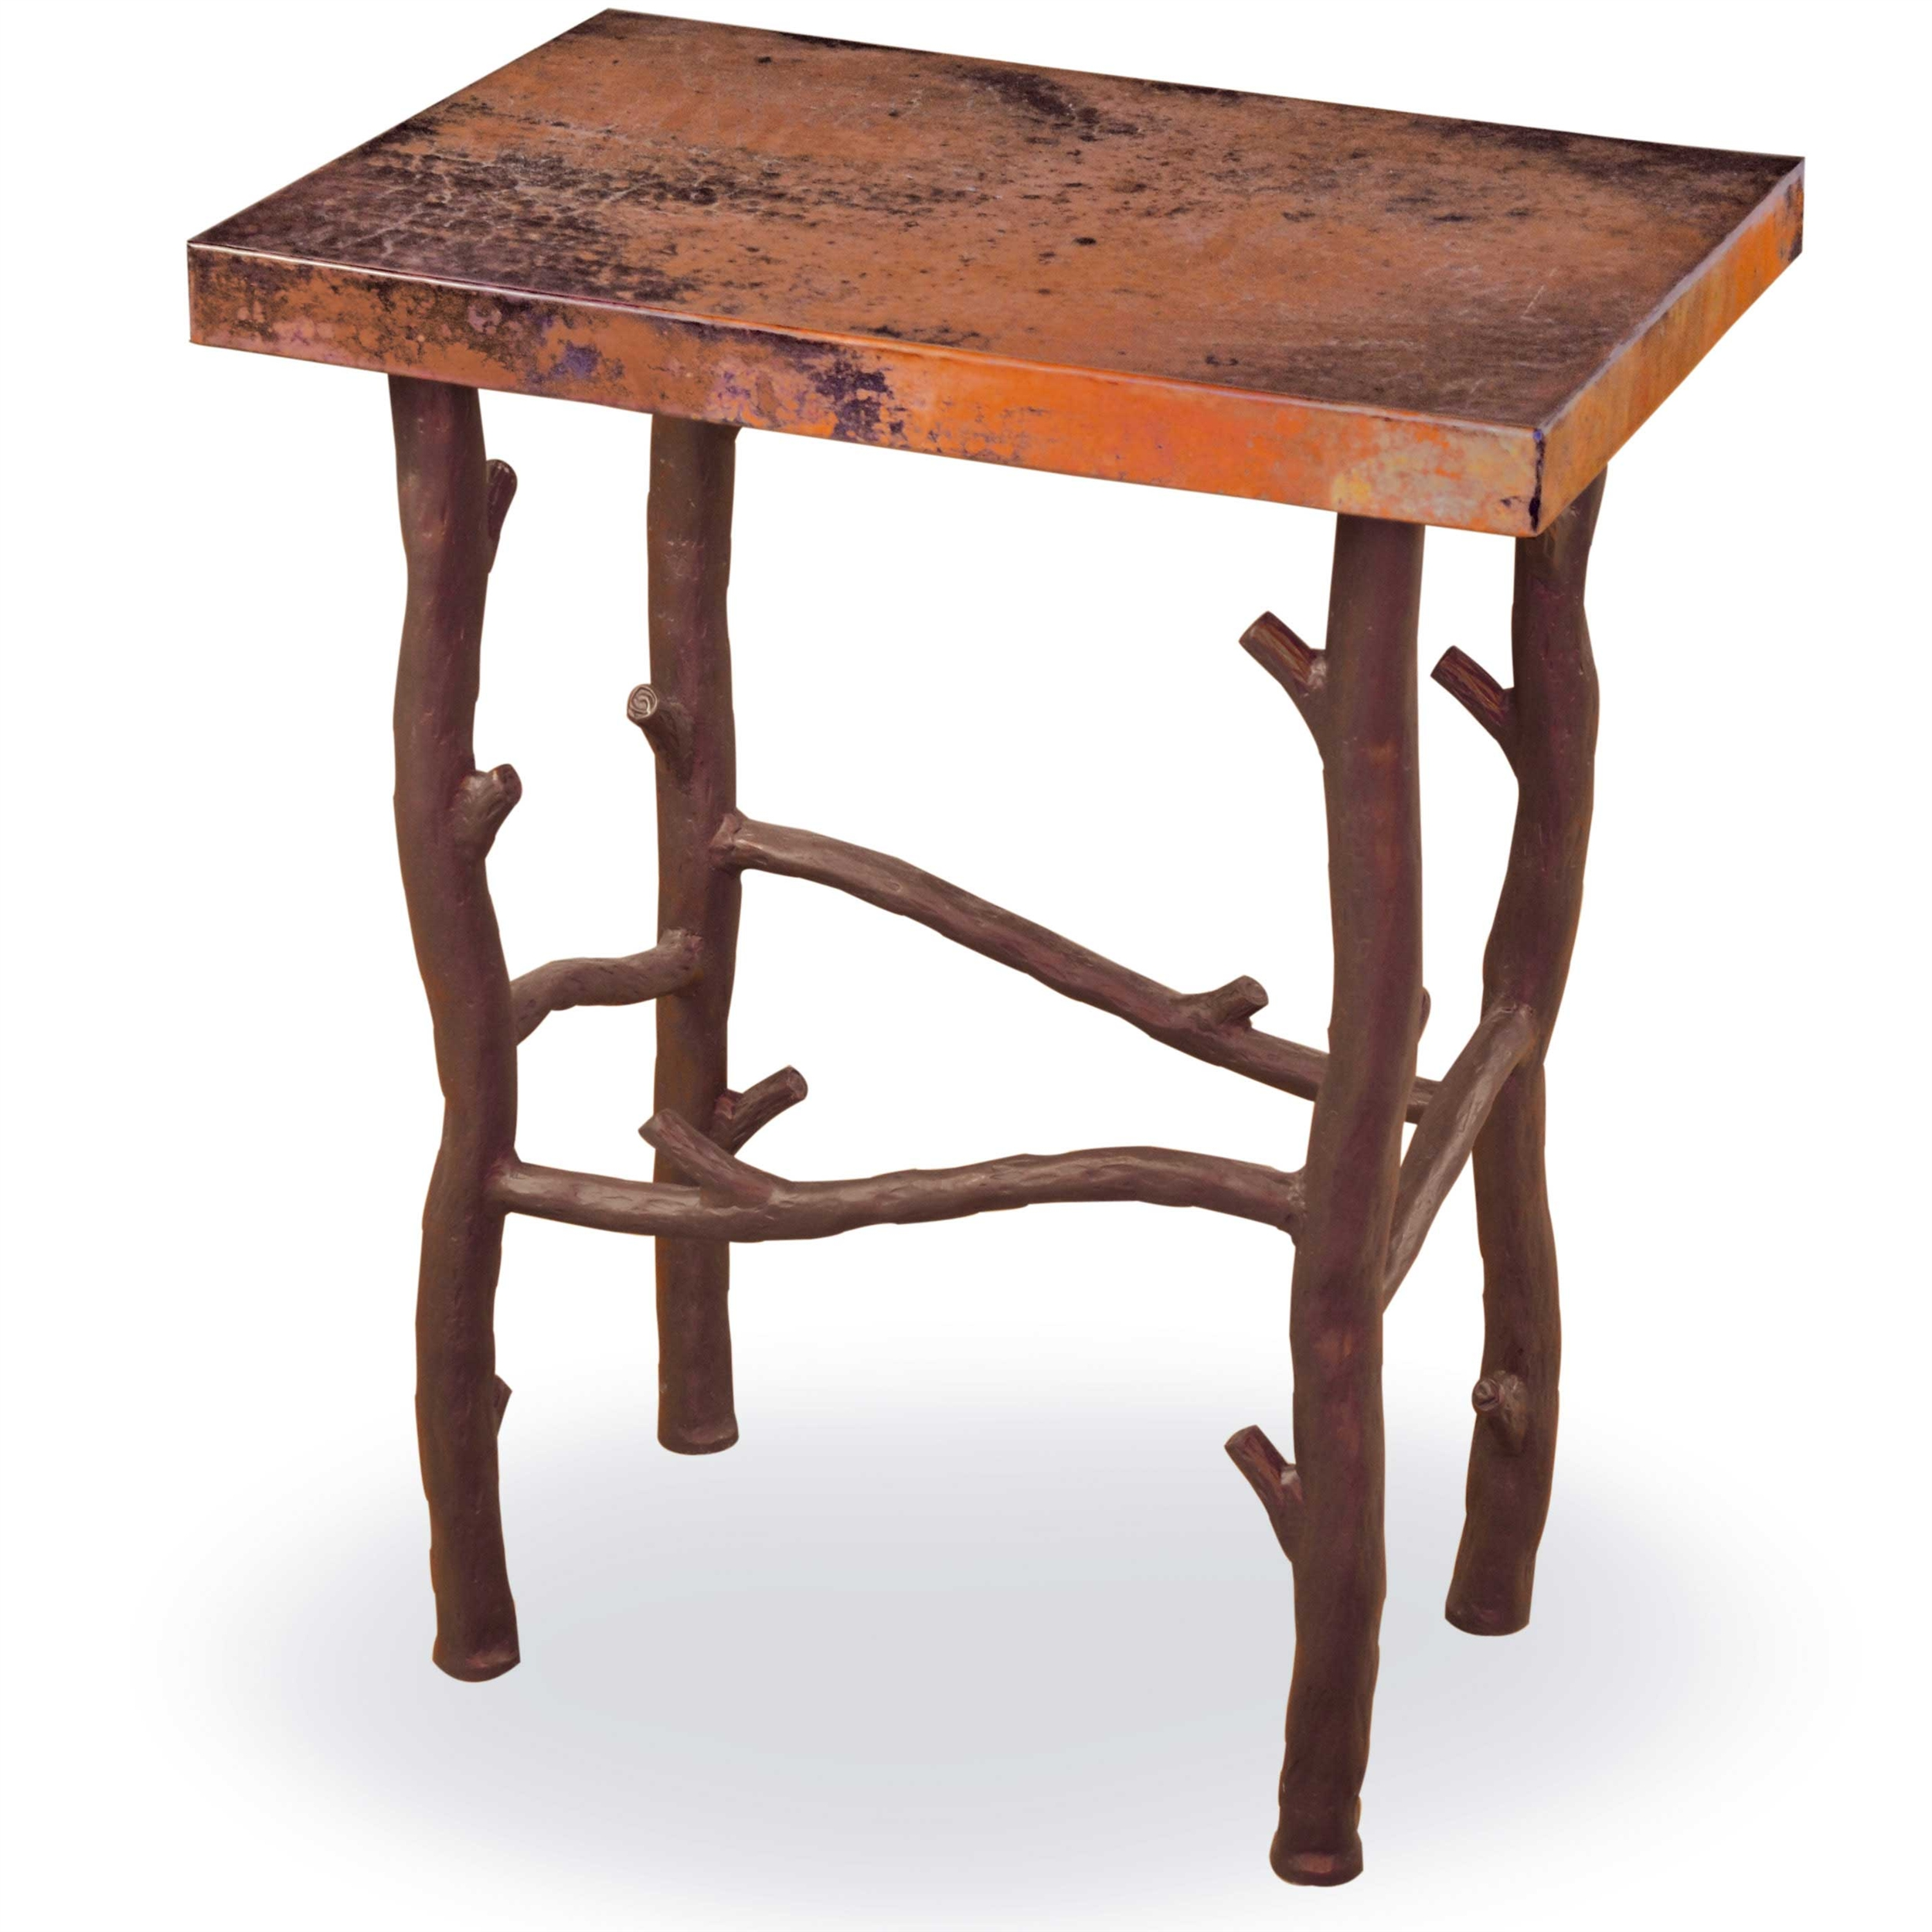 Pictured Here Is The South Fork Small End Table With Aged